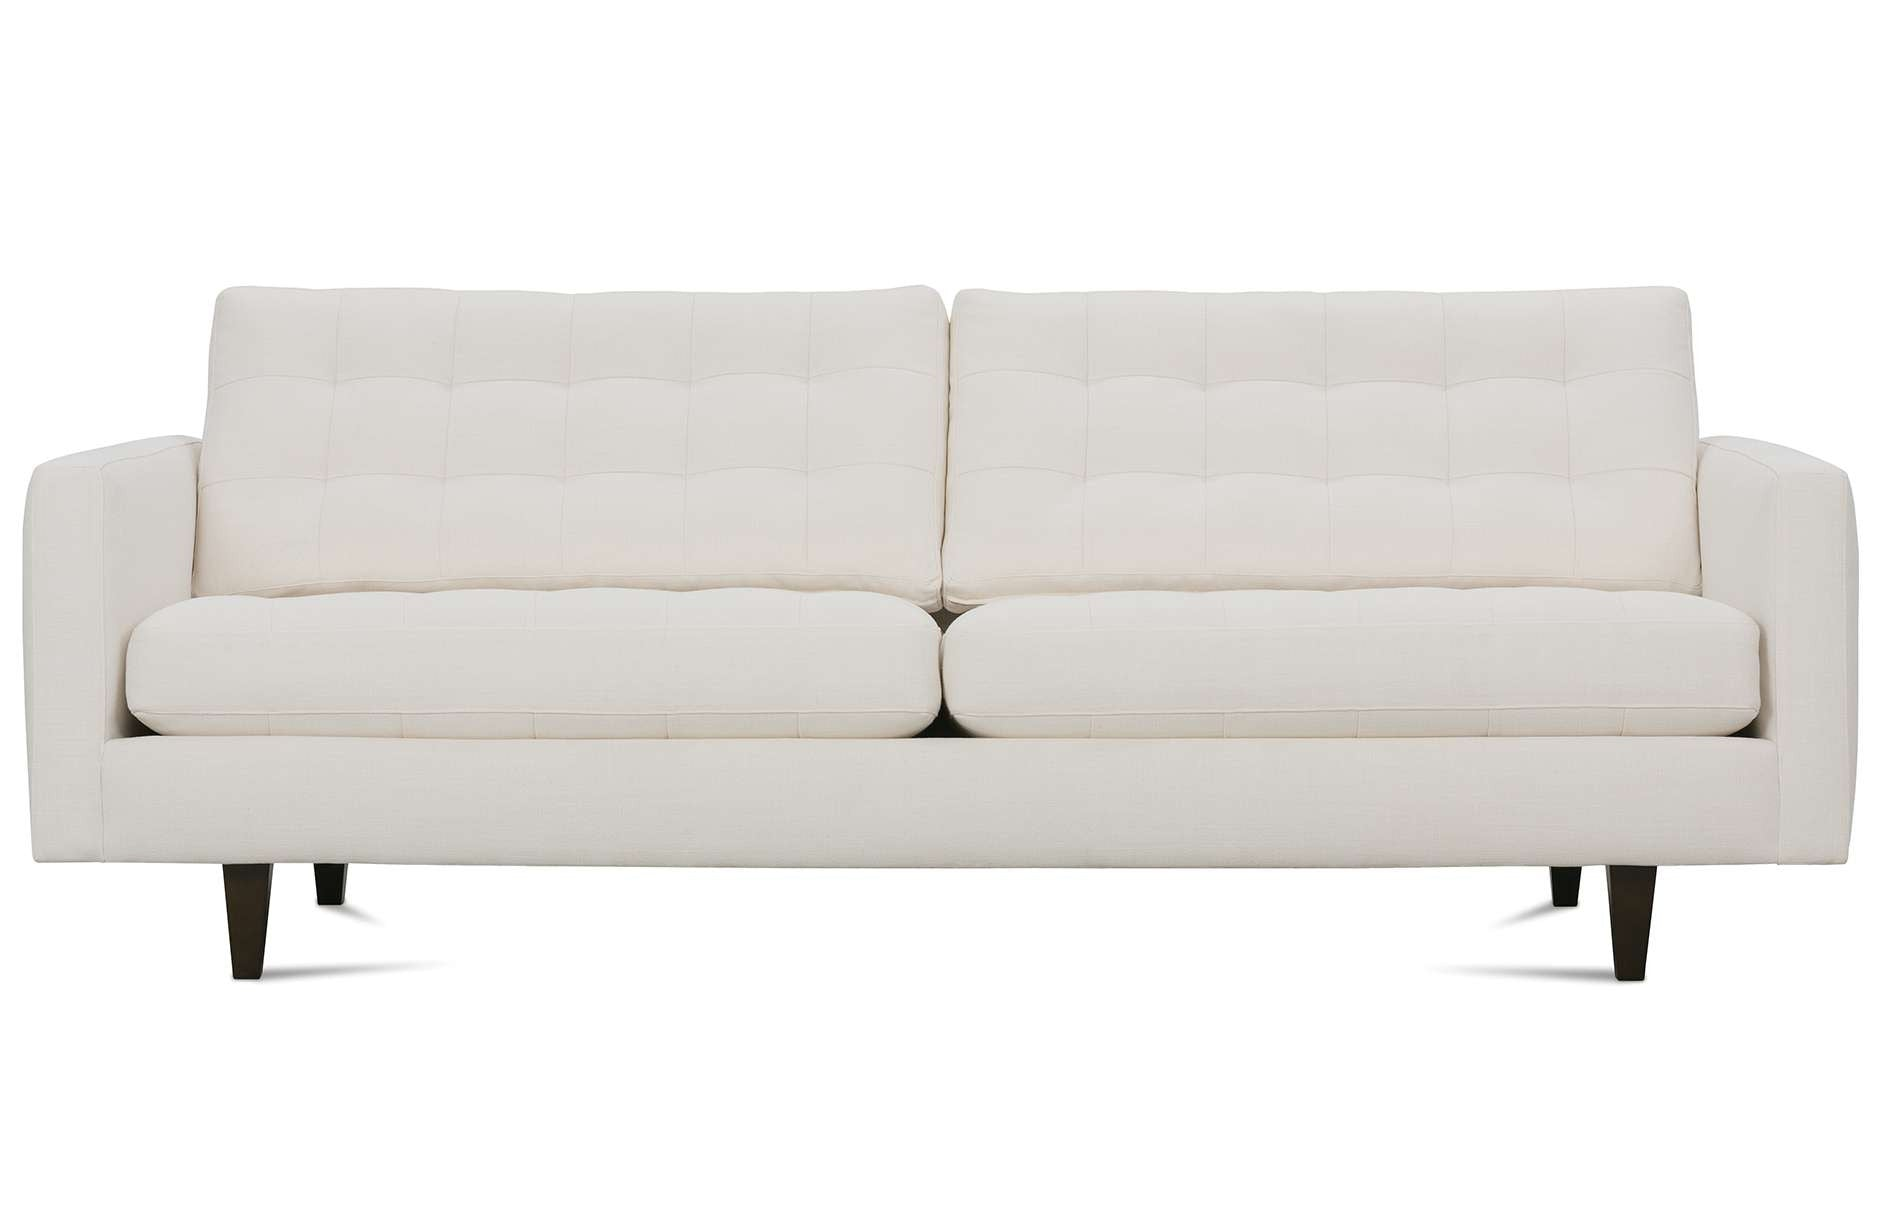 Kagan s Home ROWE Martin Sofa